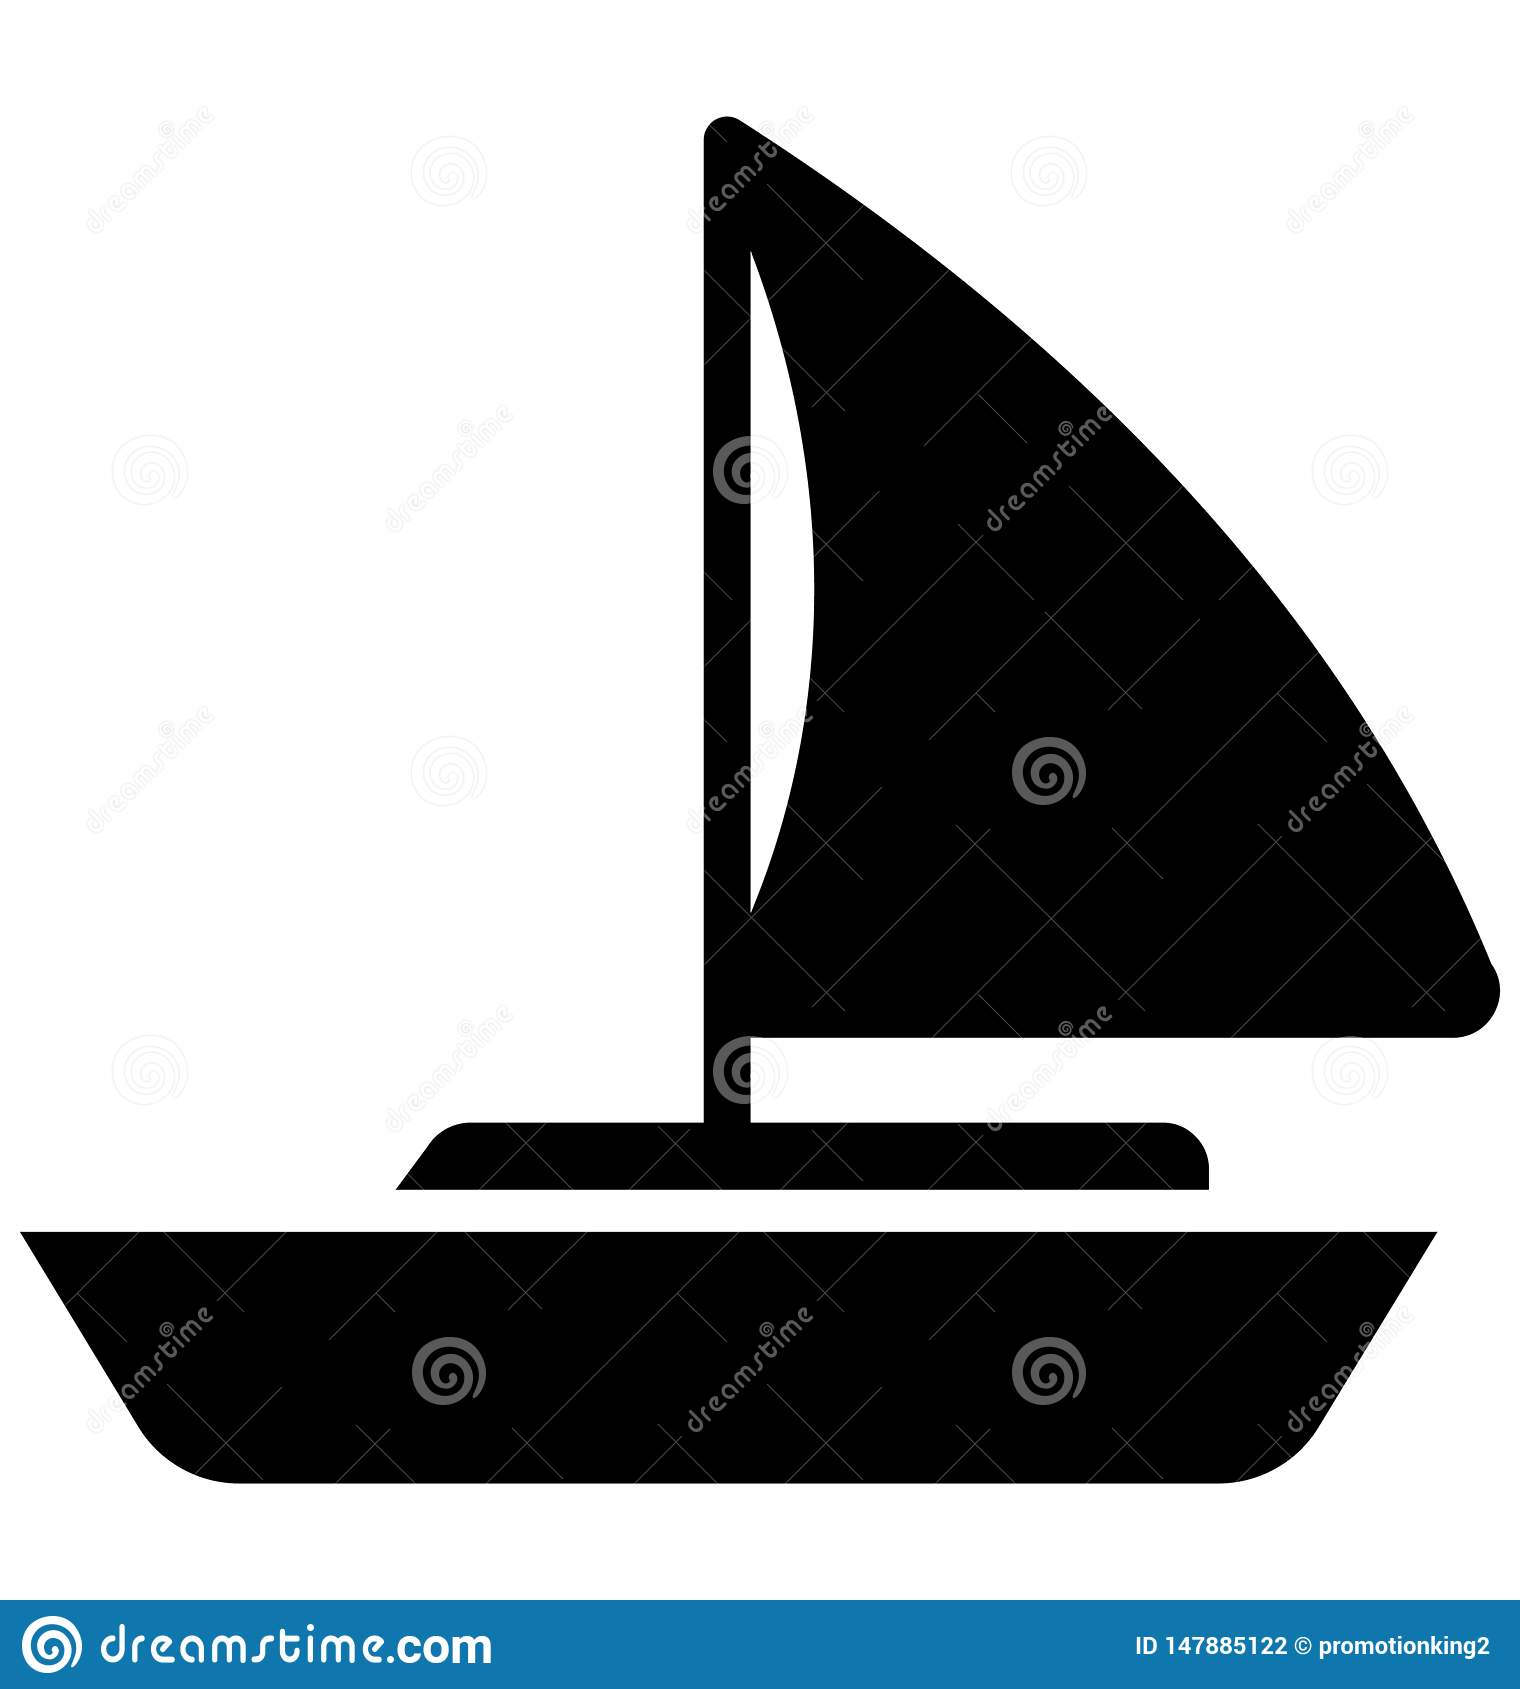 Ship Isolated Vector Icon which can easily modify or edit